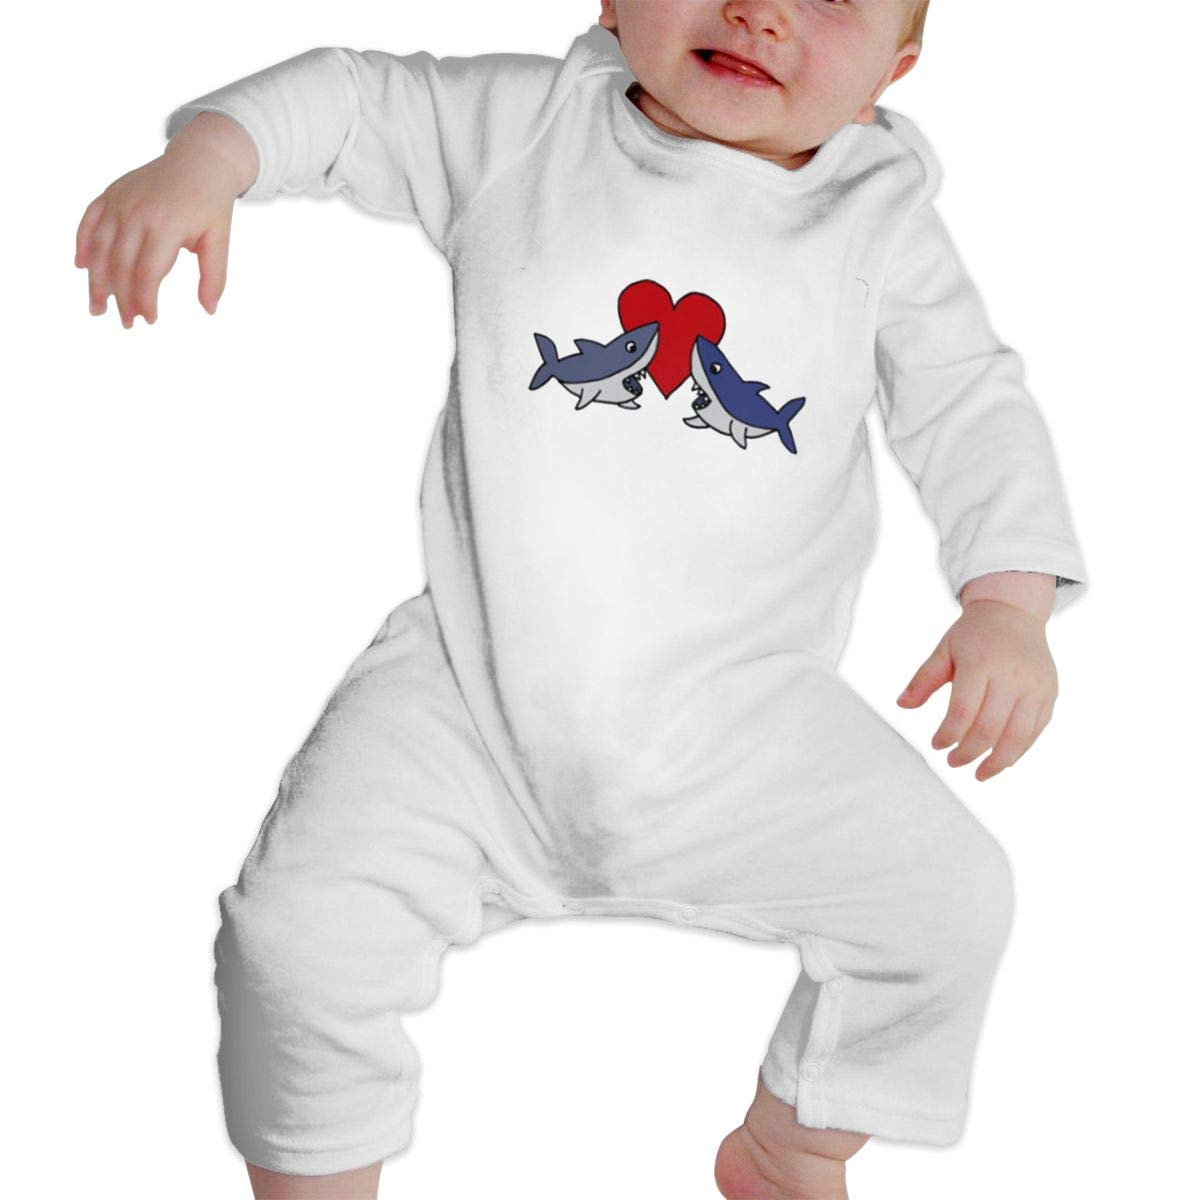 Infant Baby Girls Cotton Long Sleeve Funny Cute Shark Climb Romper One-Piece Romper Clothes